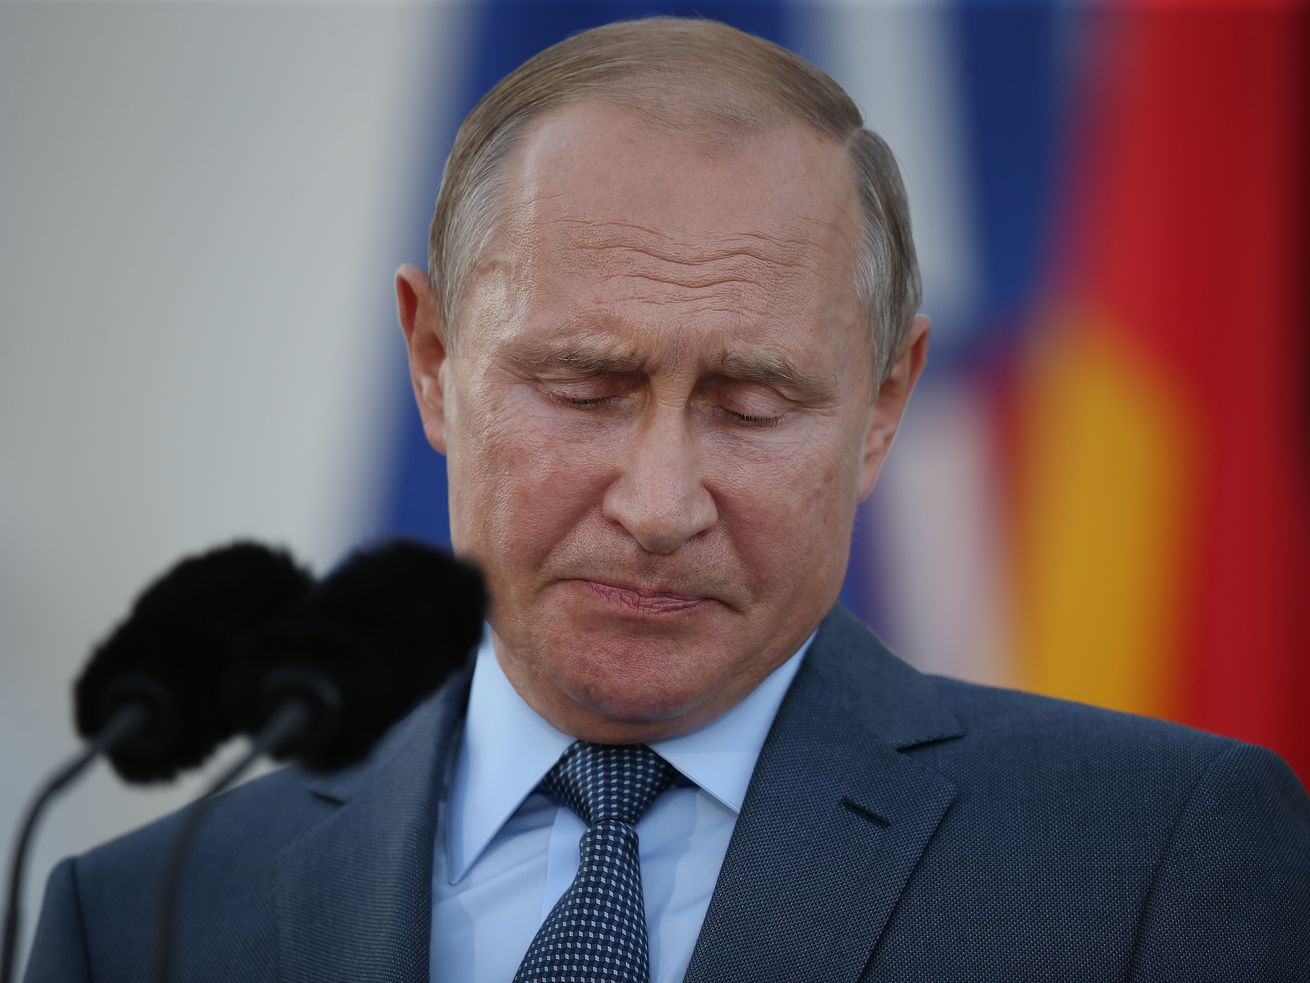 Russian President Vladimir Putin won't be happy with the sanctions President Donald Trump placed on individuals and entities in his country on September 20, 2018.